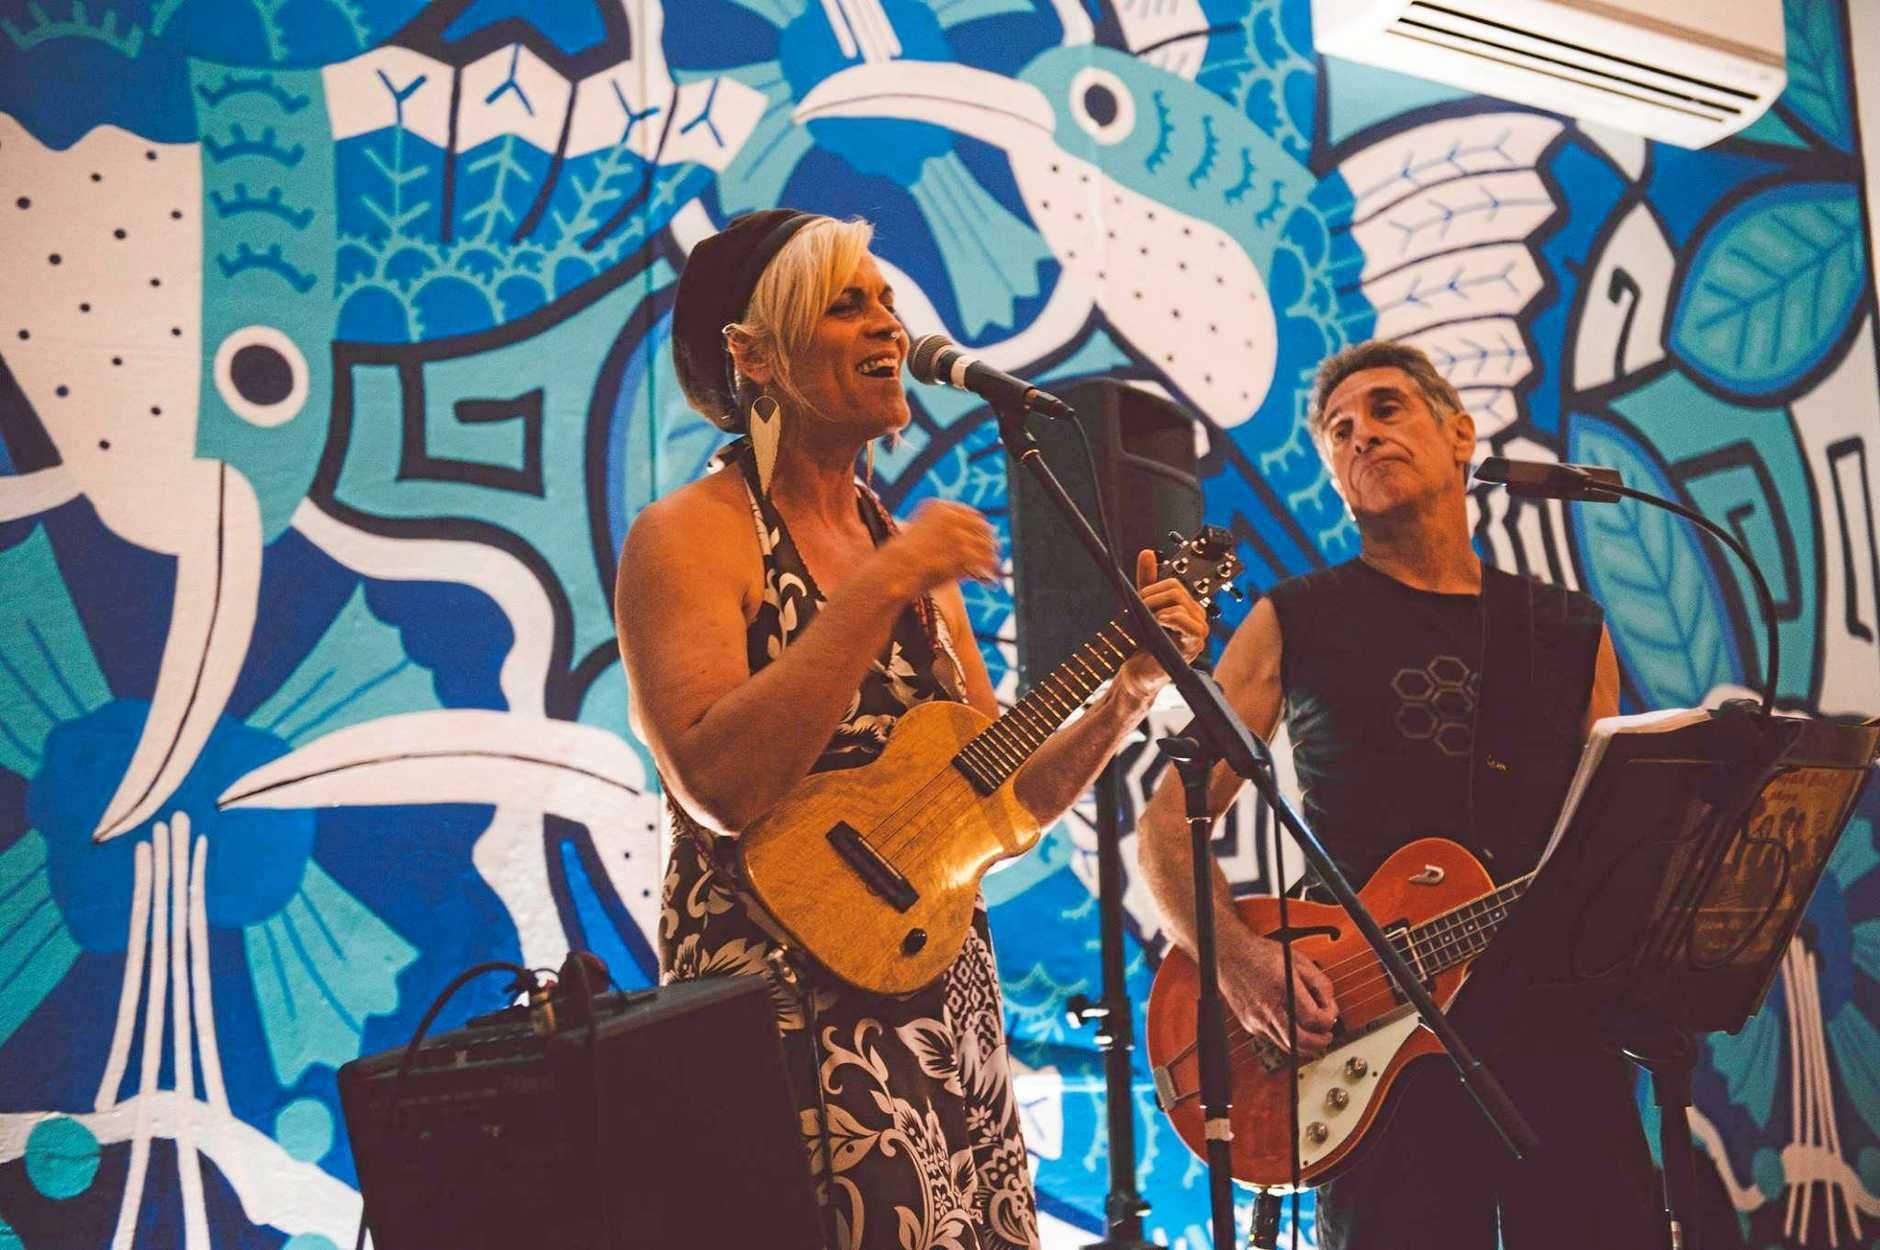 Touring duo Uke Nomad will bring their unique music style to the Kucom Theatre this Sunday